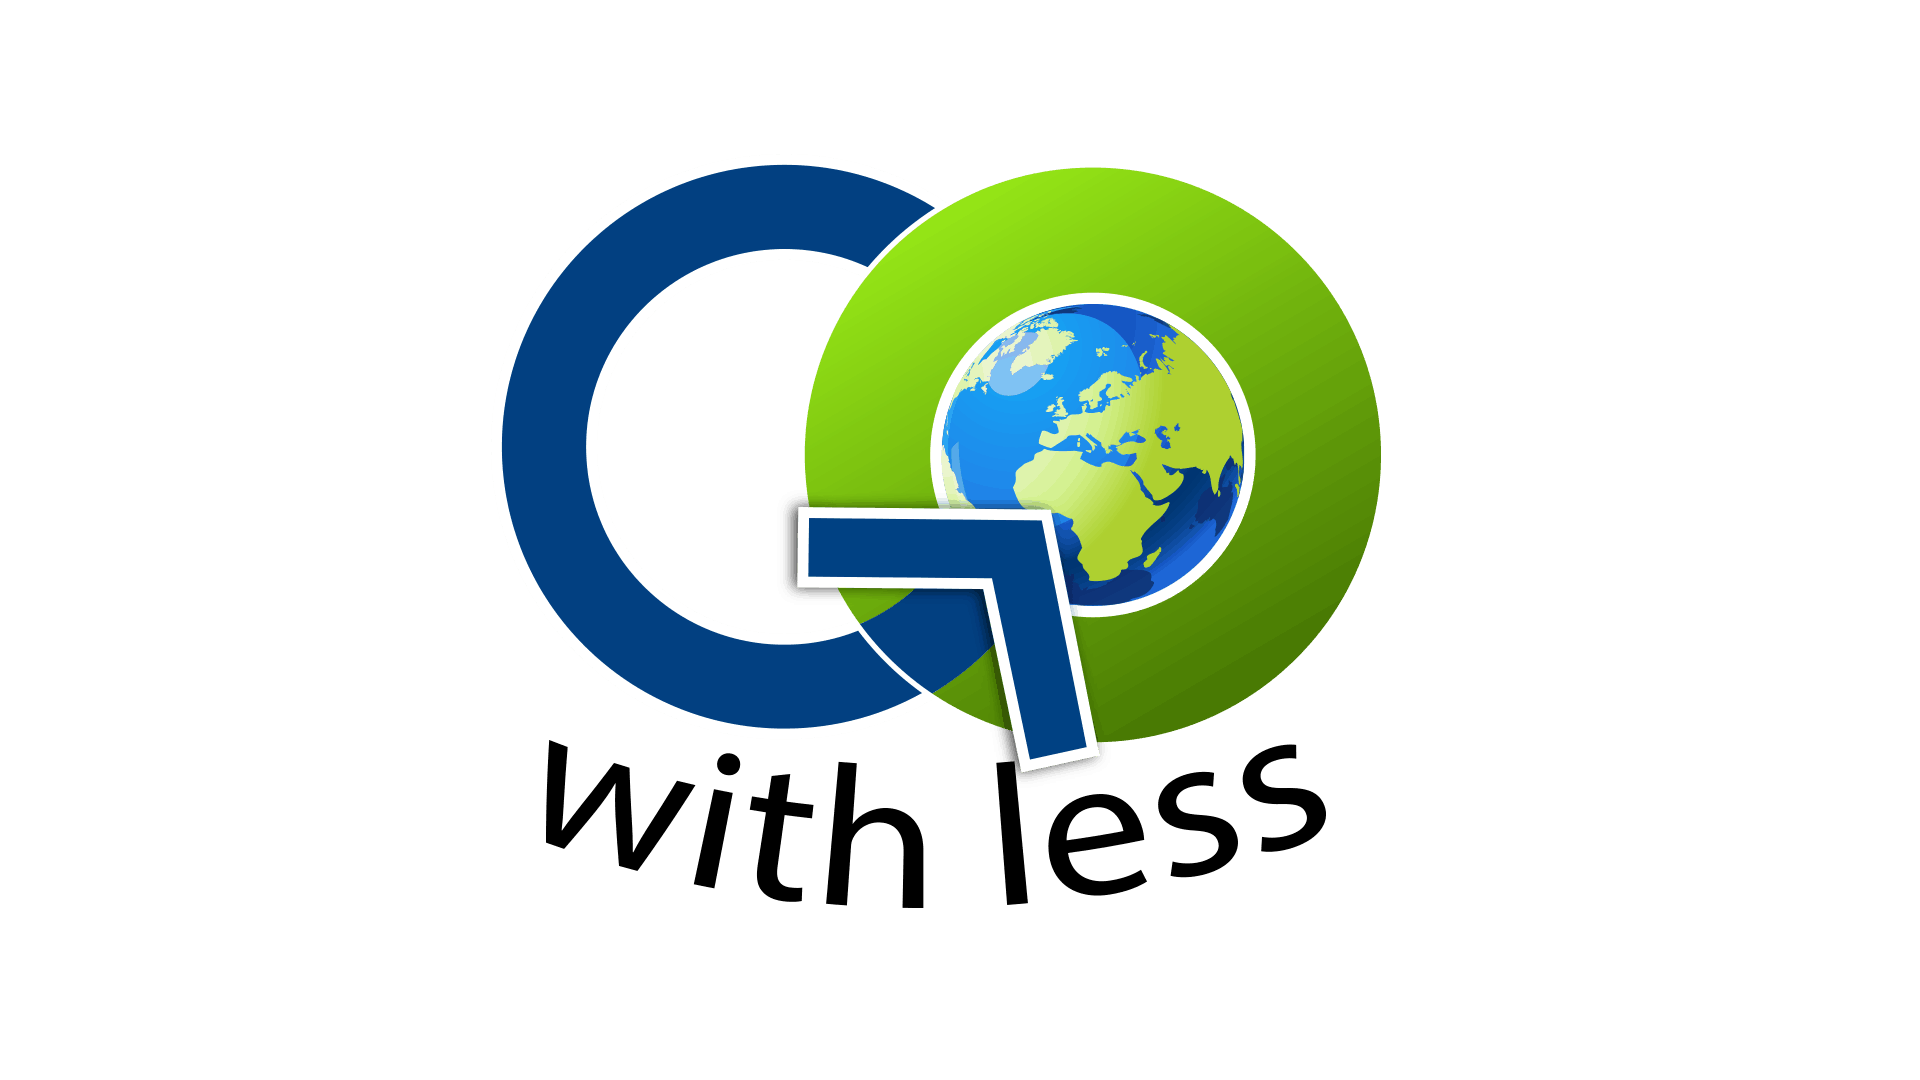 GO With Less